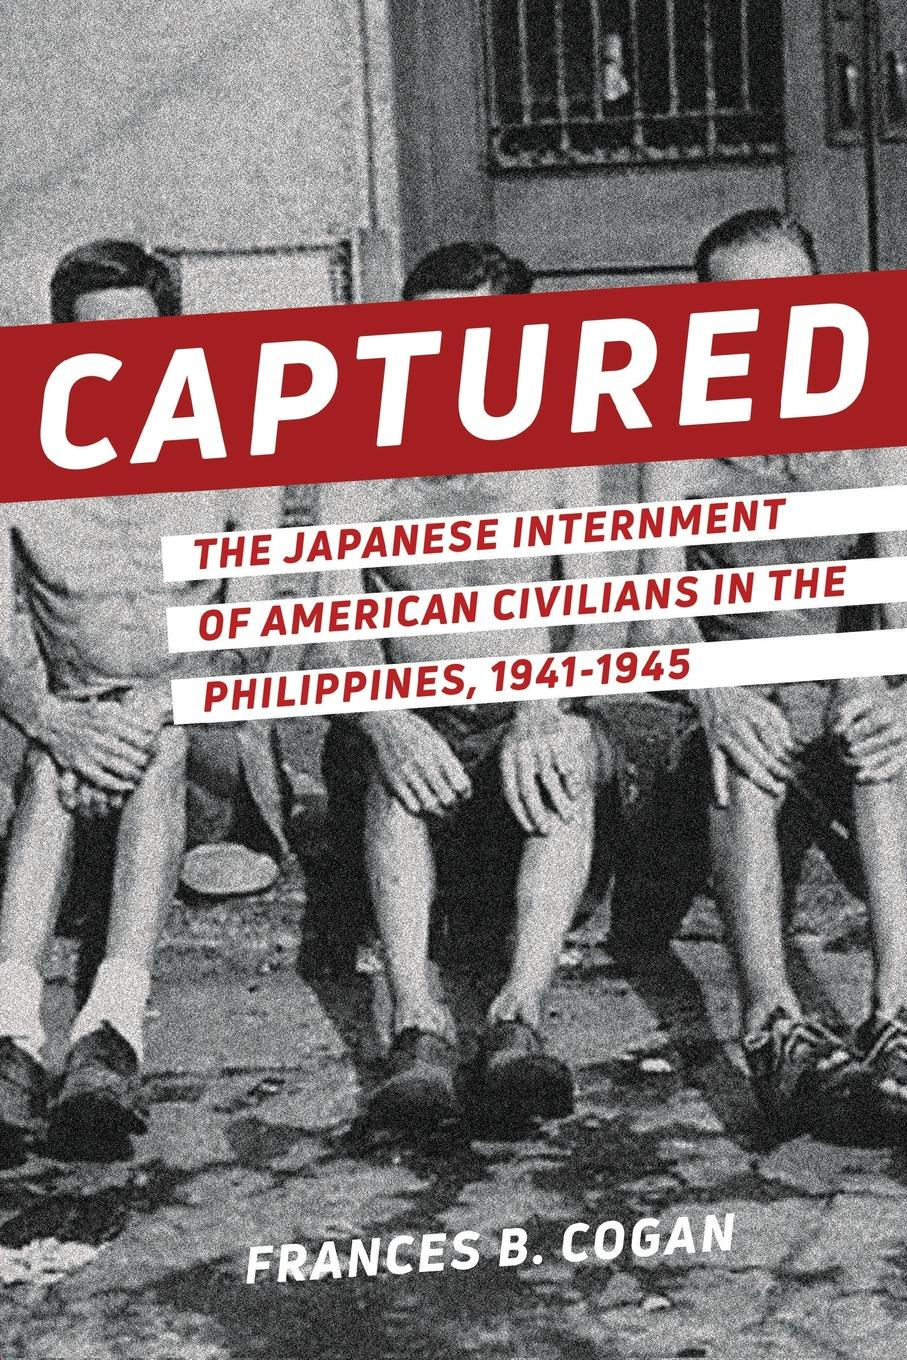 Frances B. Cogan Captured. The Japanese Internment of American Civilians in the Philippines, 1941-1945